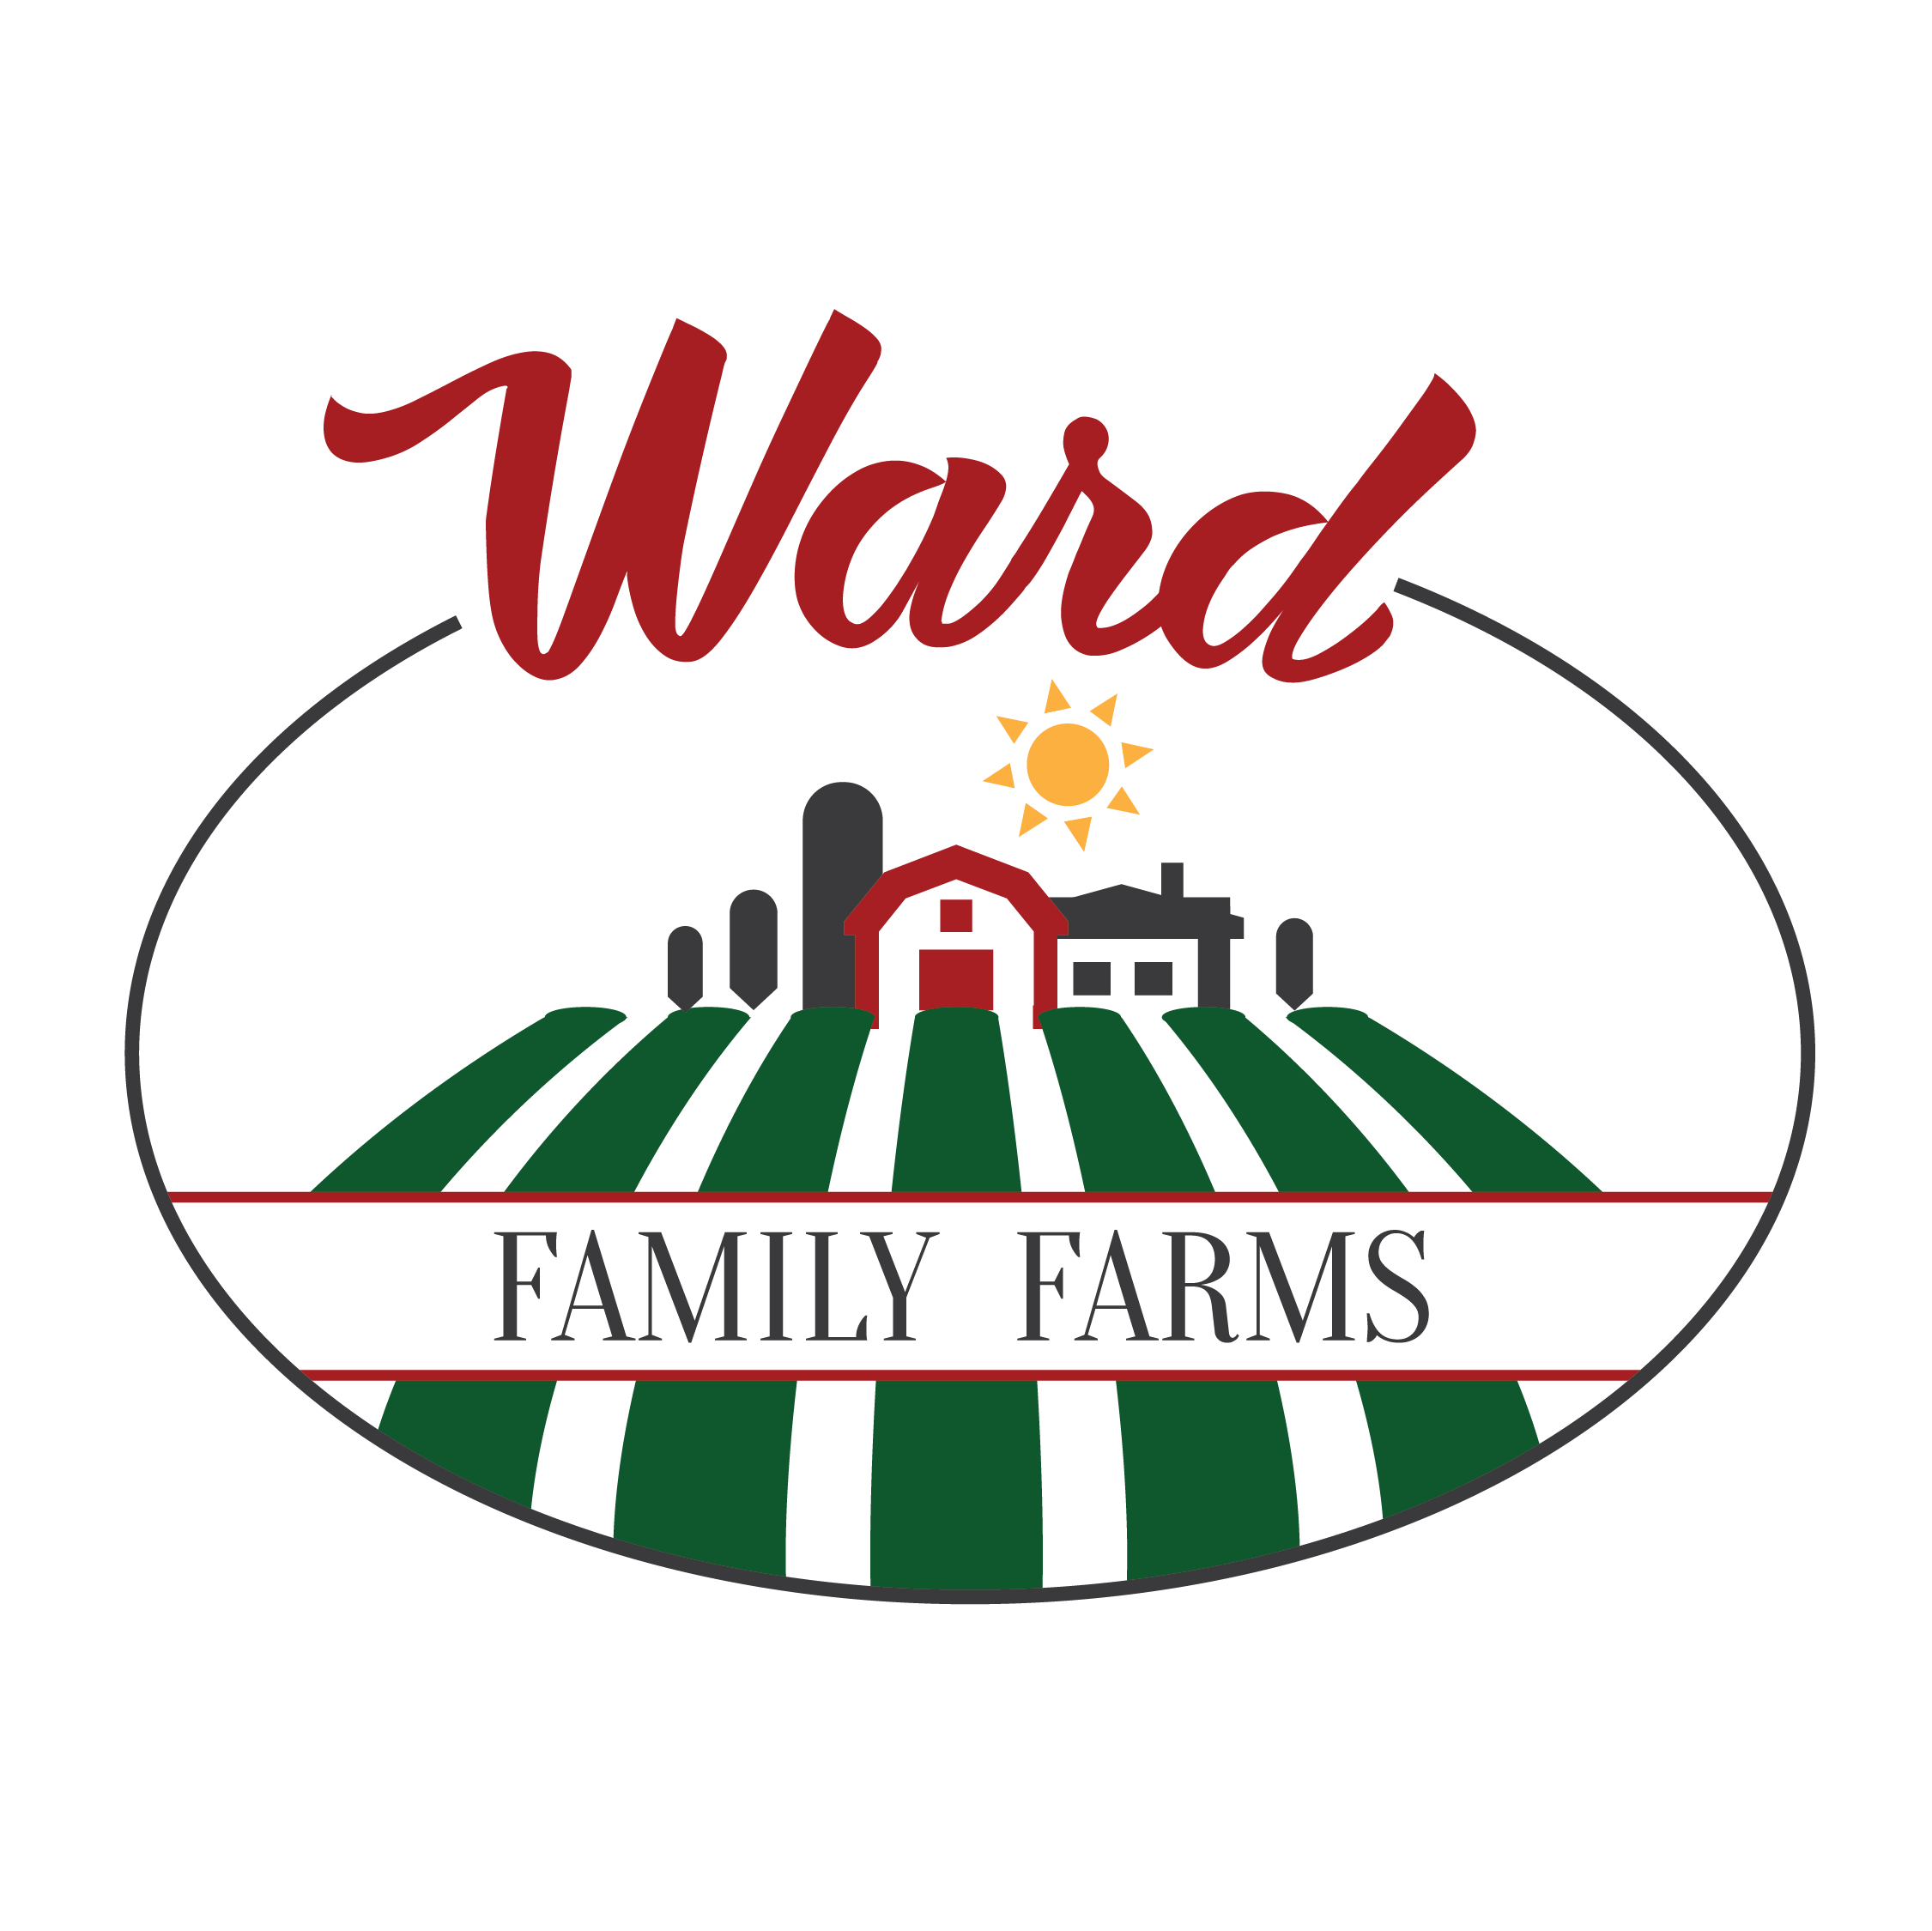 Ward Family Farms Logo